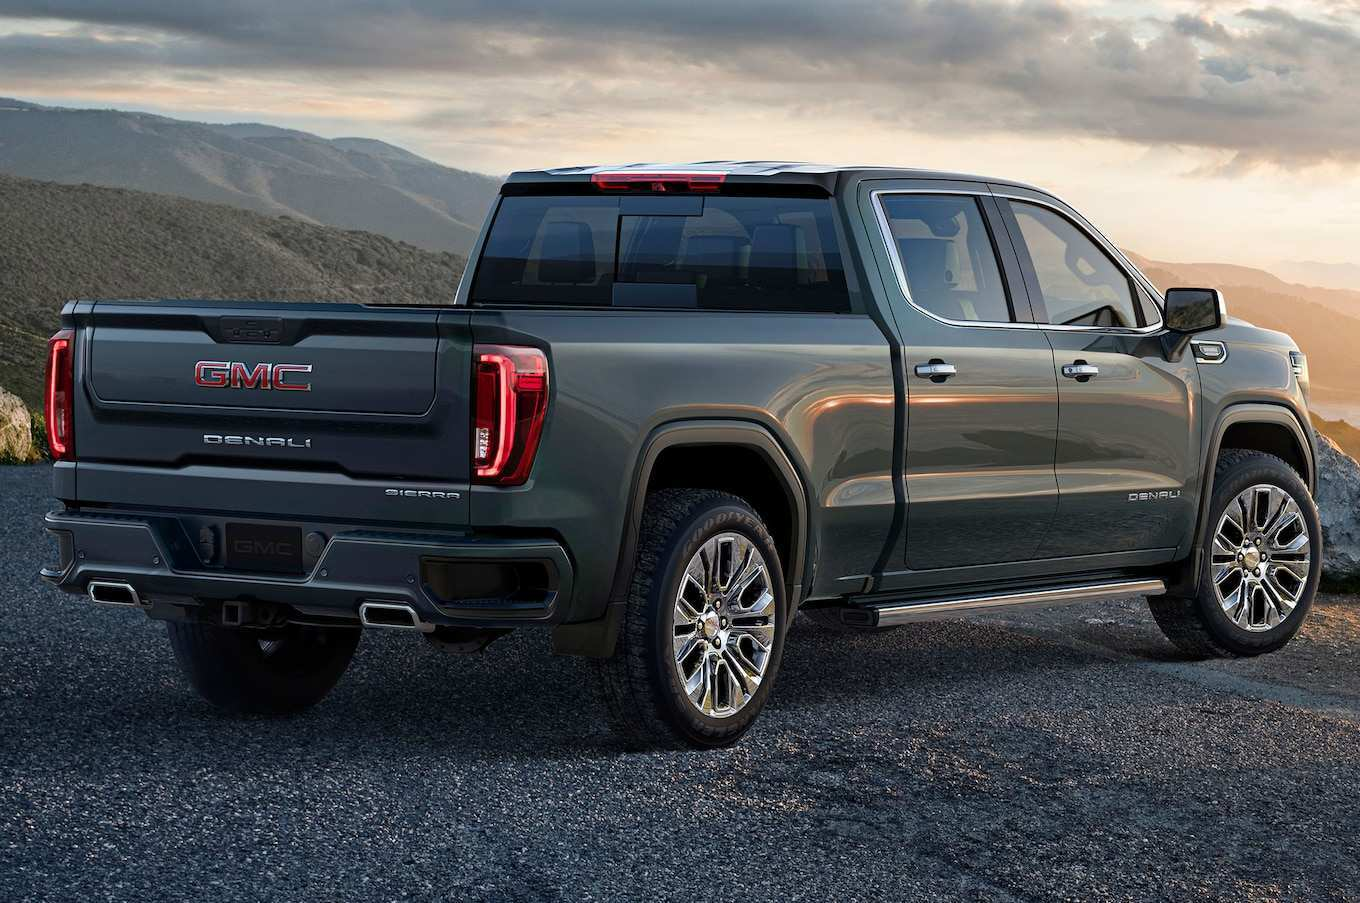 54 All New 2019 Gmc Sierra Mpg Specs Release Date for 2019 Gmc Sierra Mpg Specs